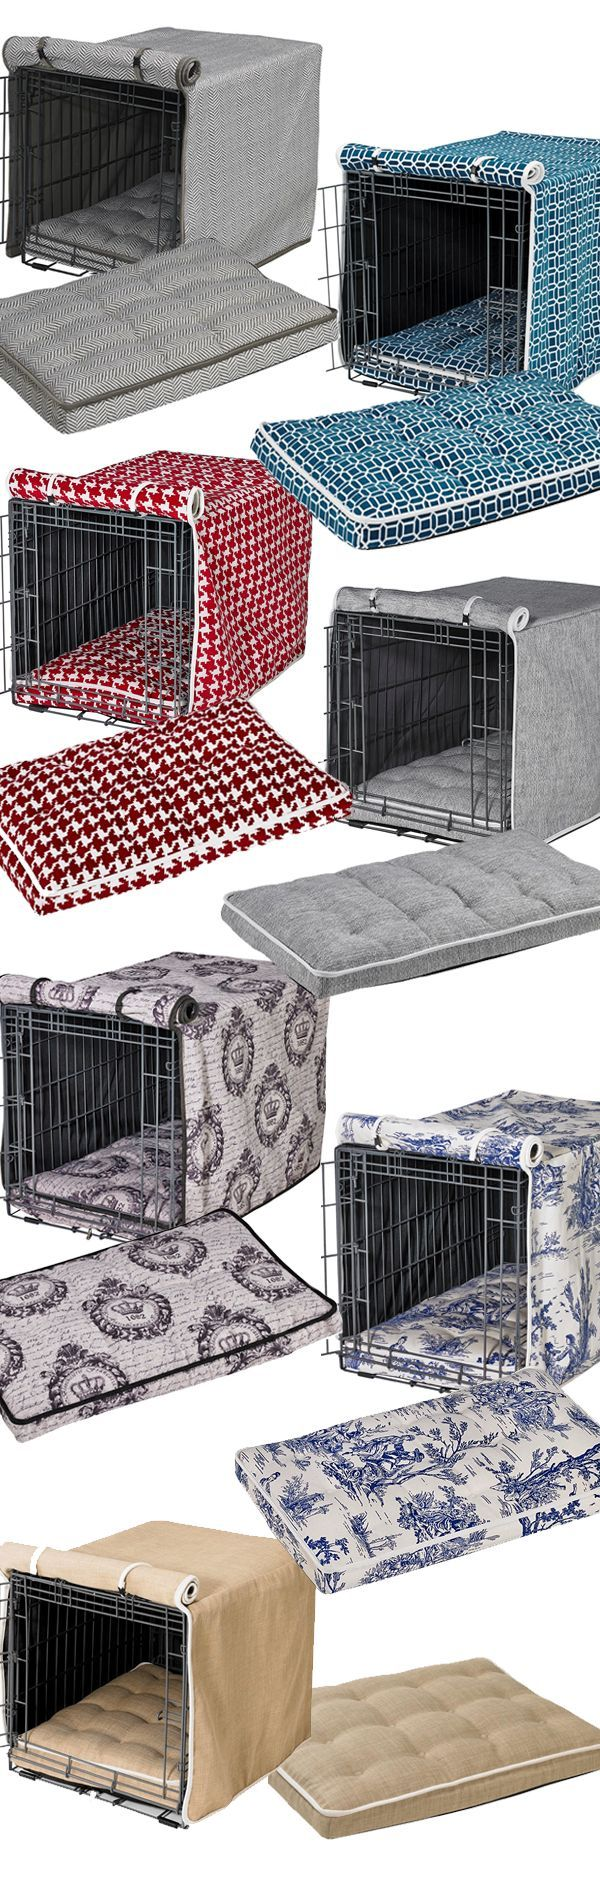 Spruce up your dog's home with our selection of designer crate covers and crate mattresses. Not only offering a refined look, crate covers and mattresses make a wire crate more comfortable and secure for your dog. Great Christmas Gift Idea!